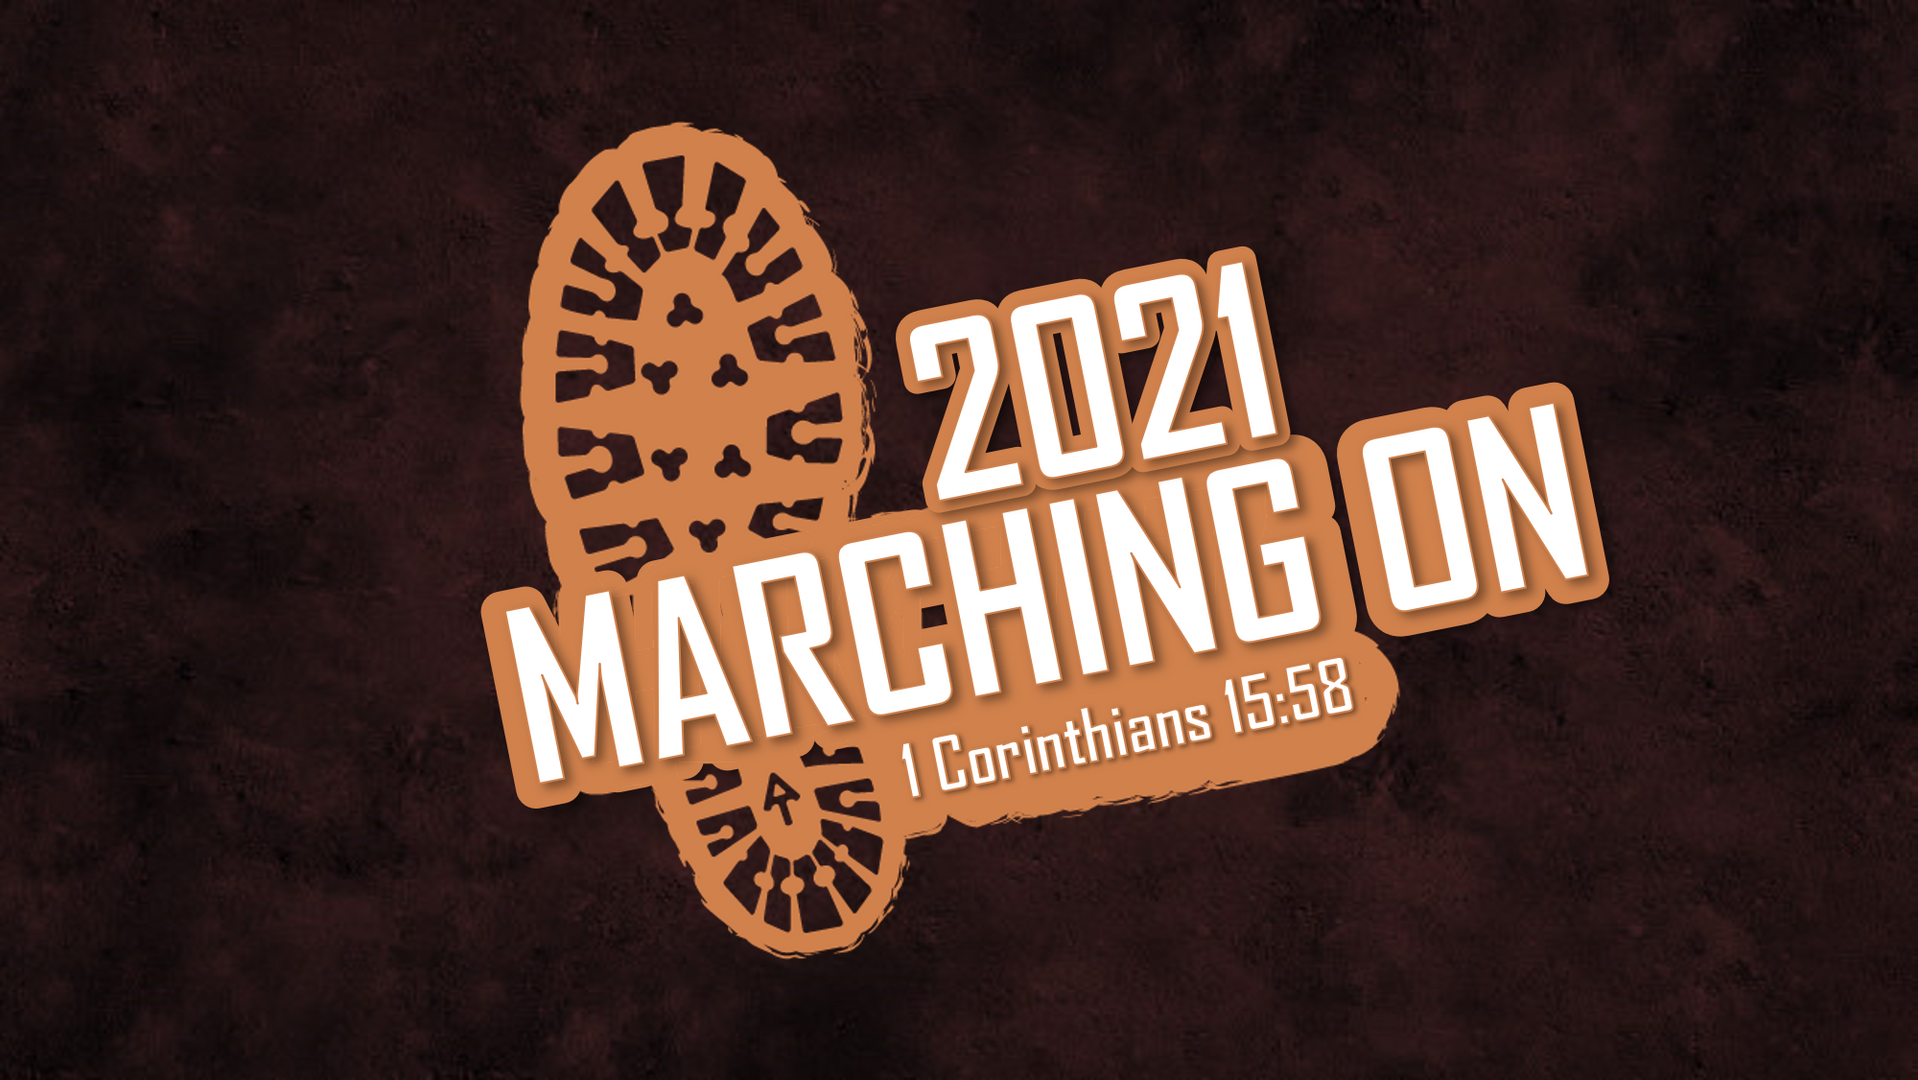 2021 Marching on Brown.png